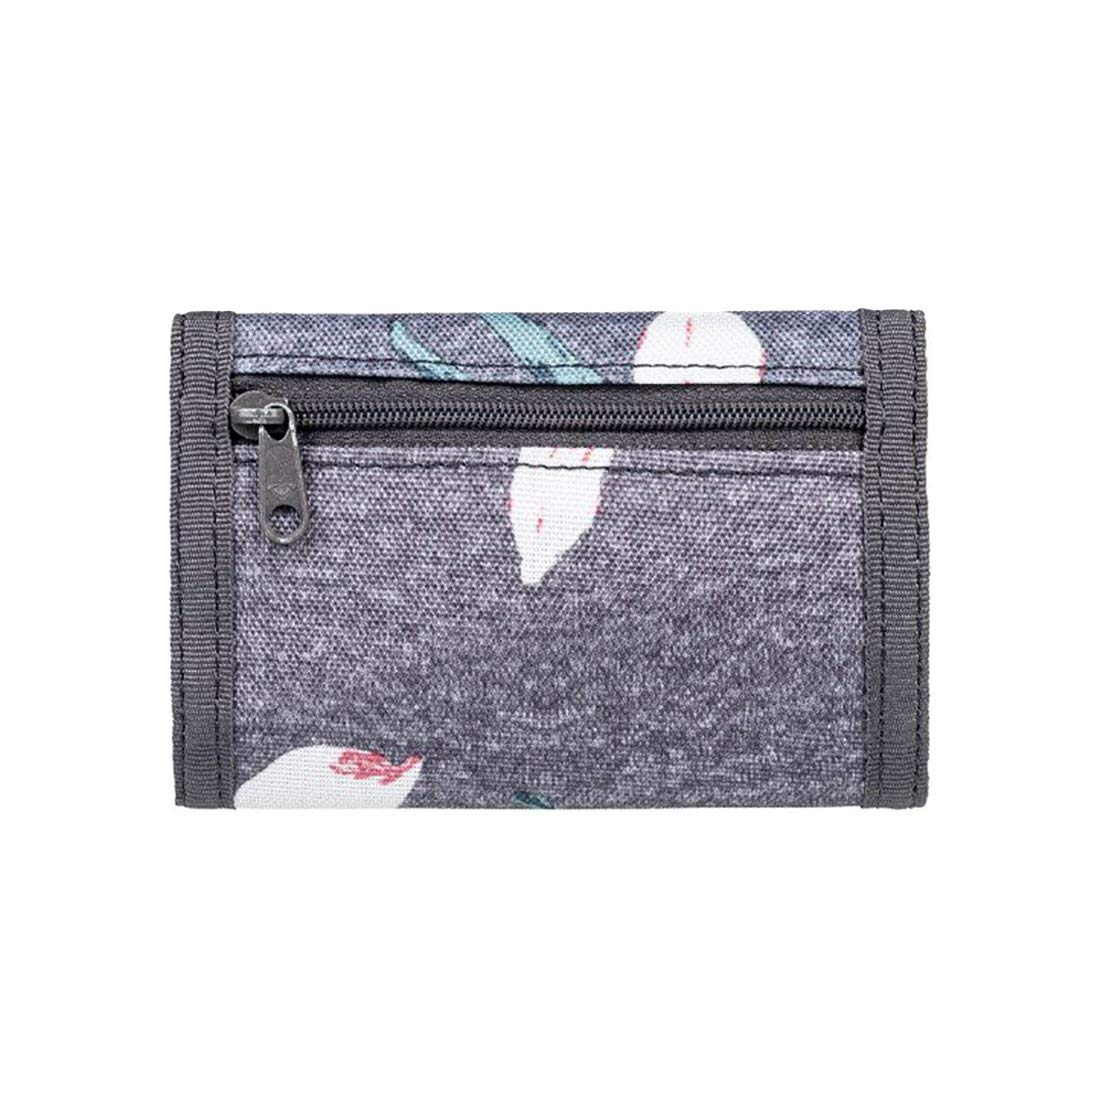 Roxy Small Beach 2 Coin Pouch Grey 12 cm Charcoal Heather Flower Field